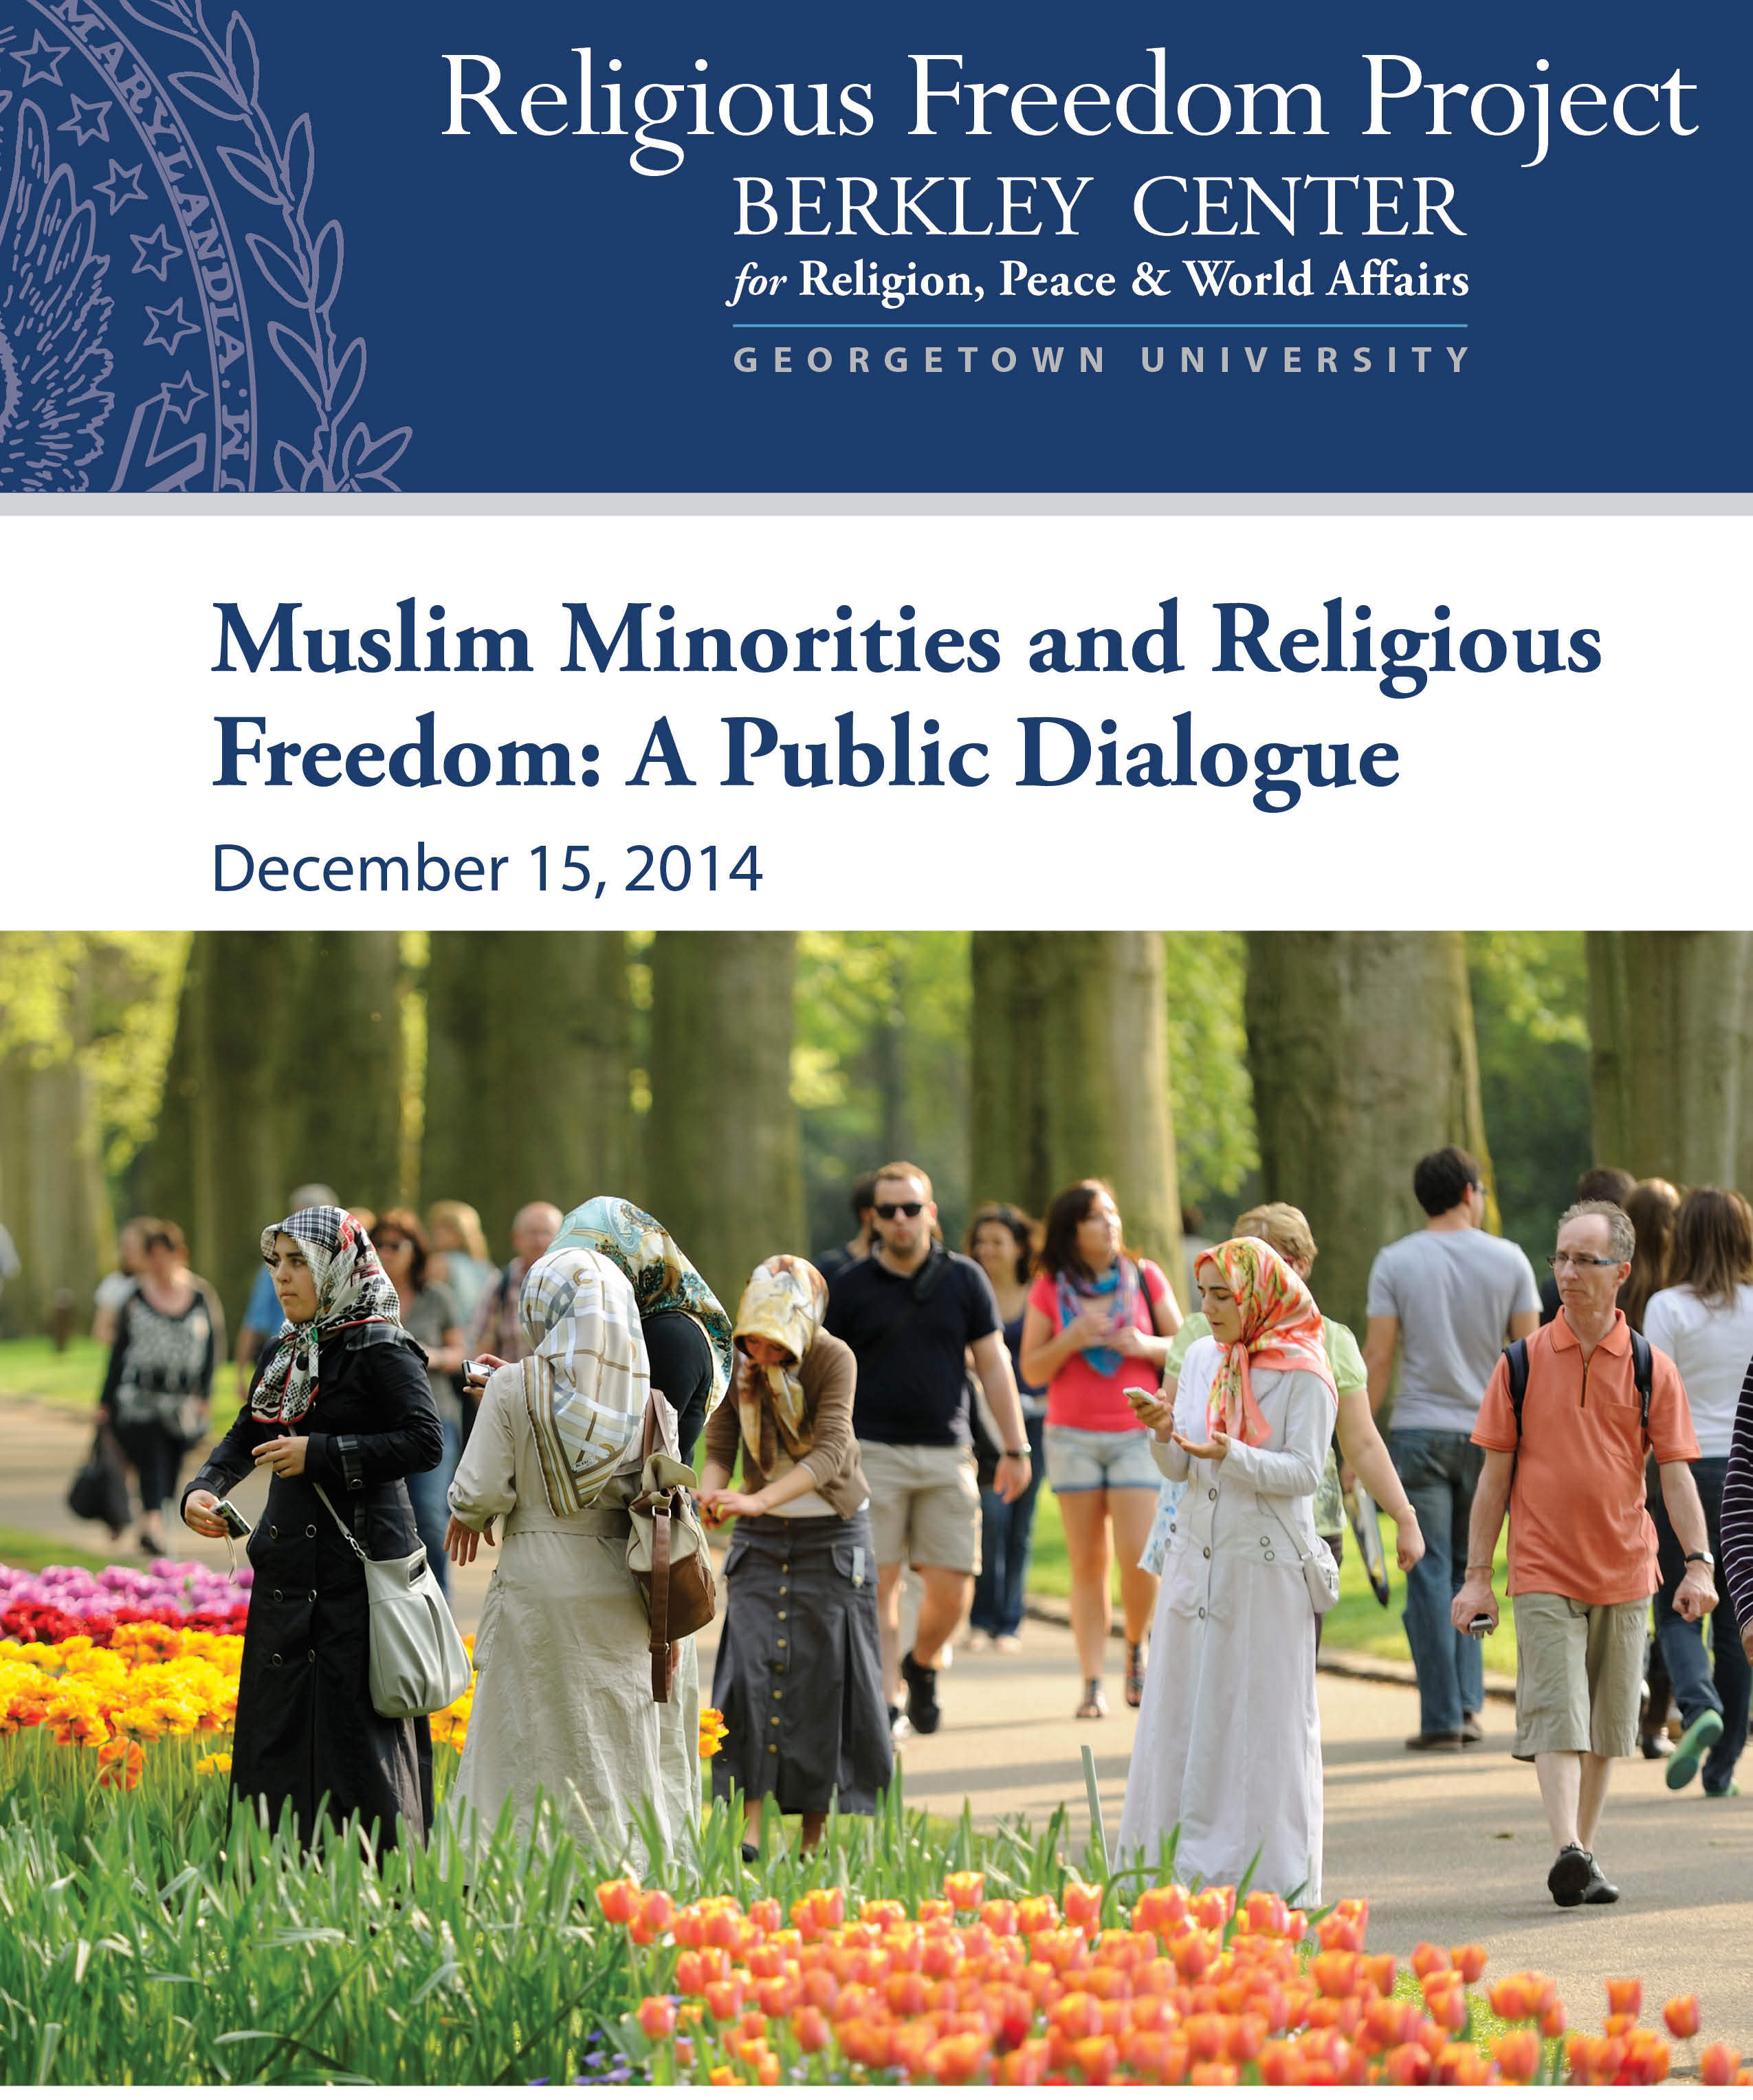 Muslim Minorities and Religious Freedom: A Public Dialogue